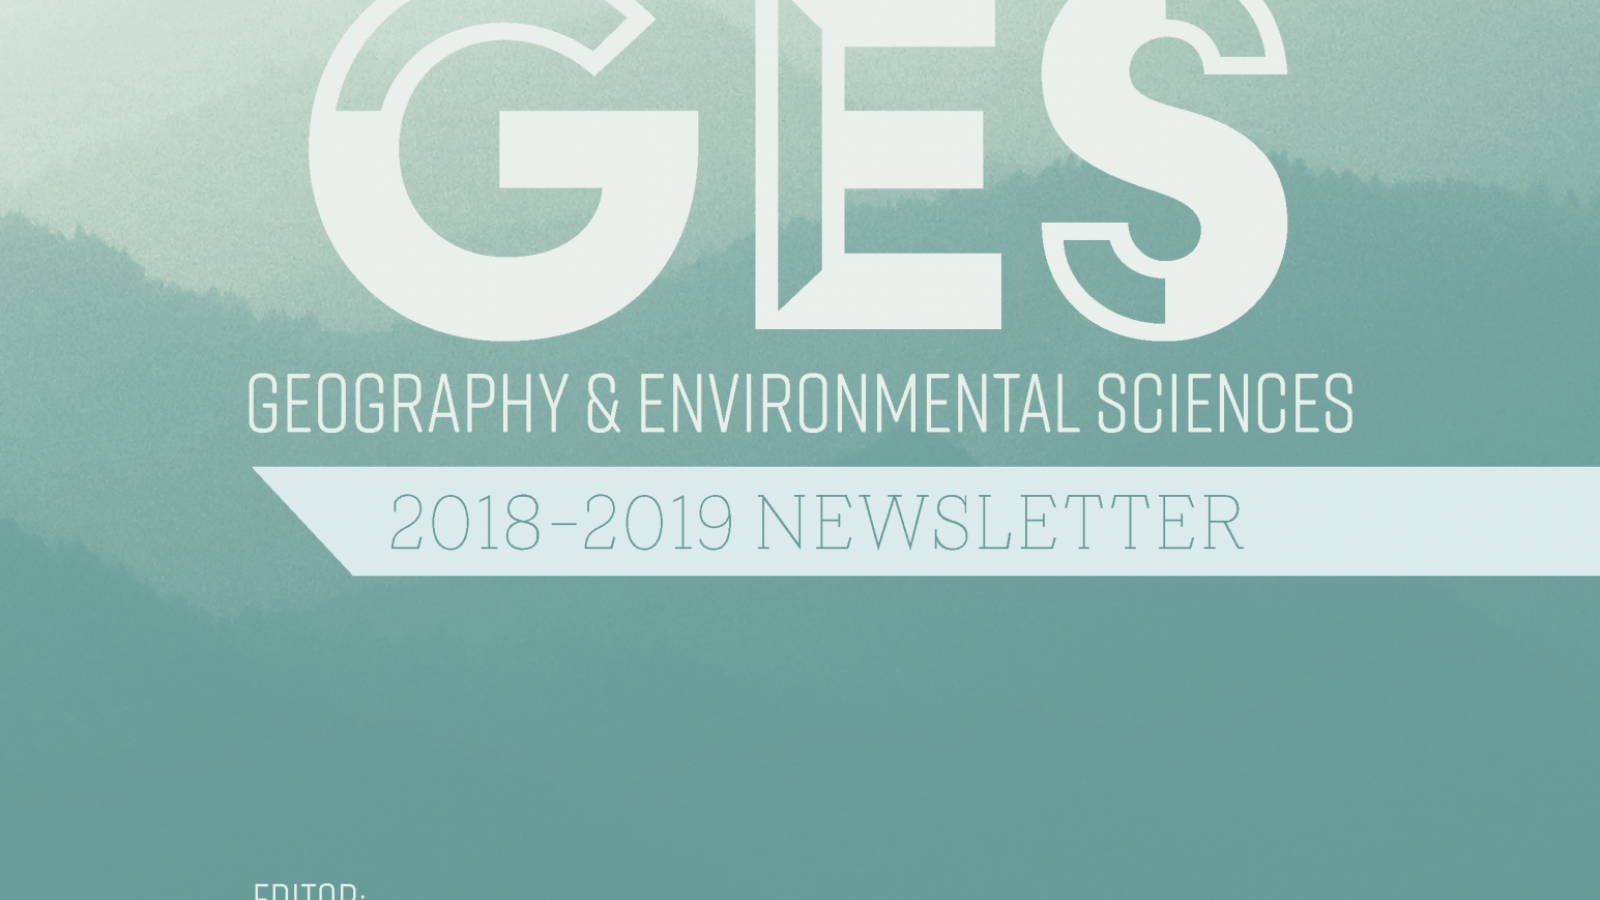 GES Newsletter Cover